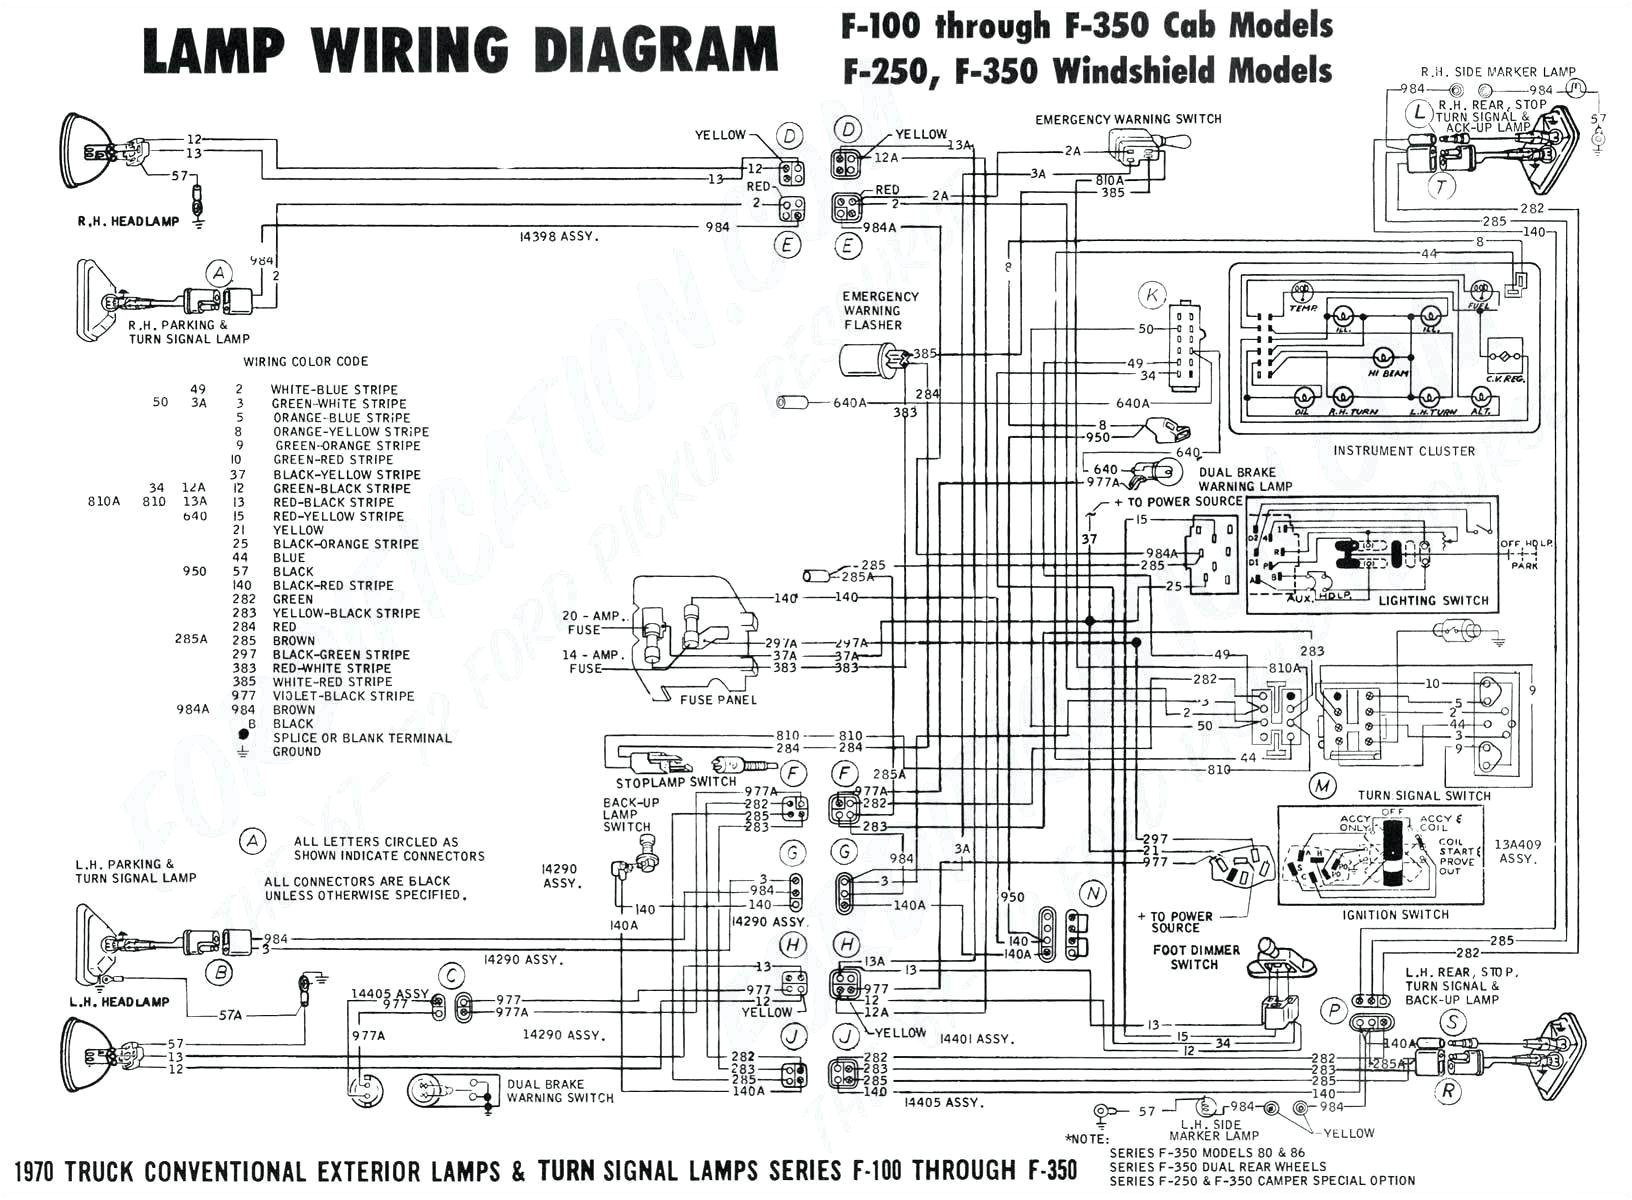 wiring diagram for 1997 chevy silverado tail lights wiring diagram tail and stop light wiring diagram free picture